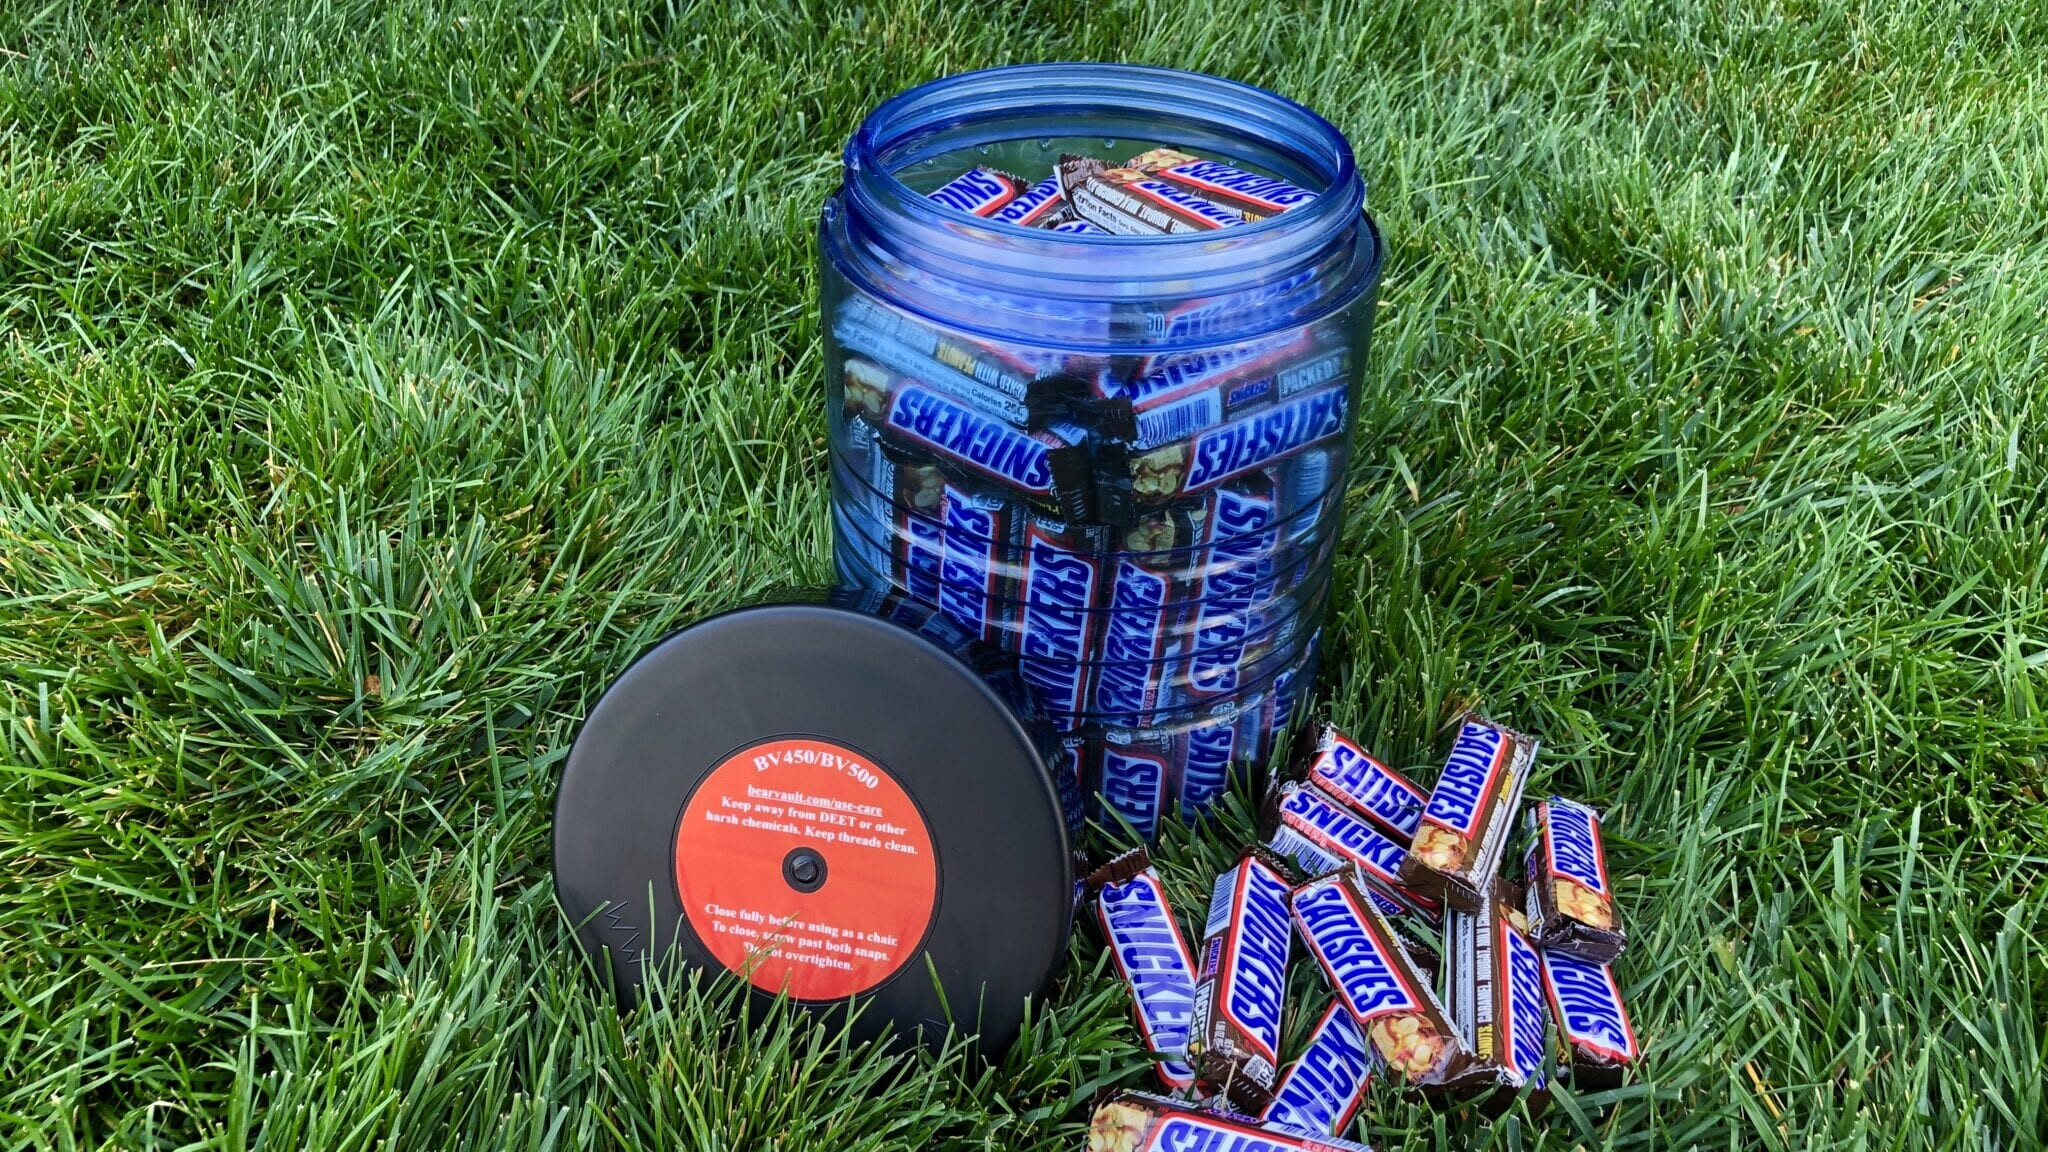 A BV500 bear canister full of snickers.